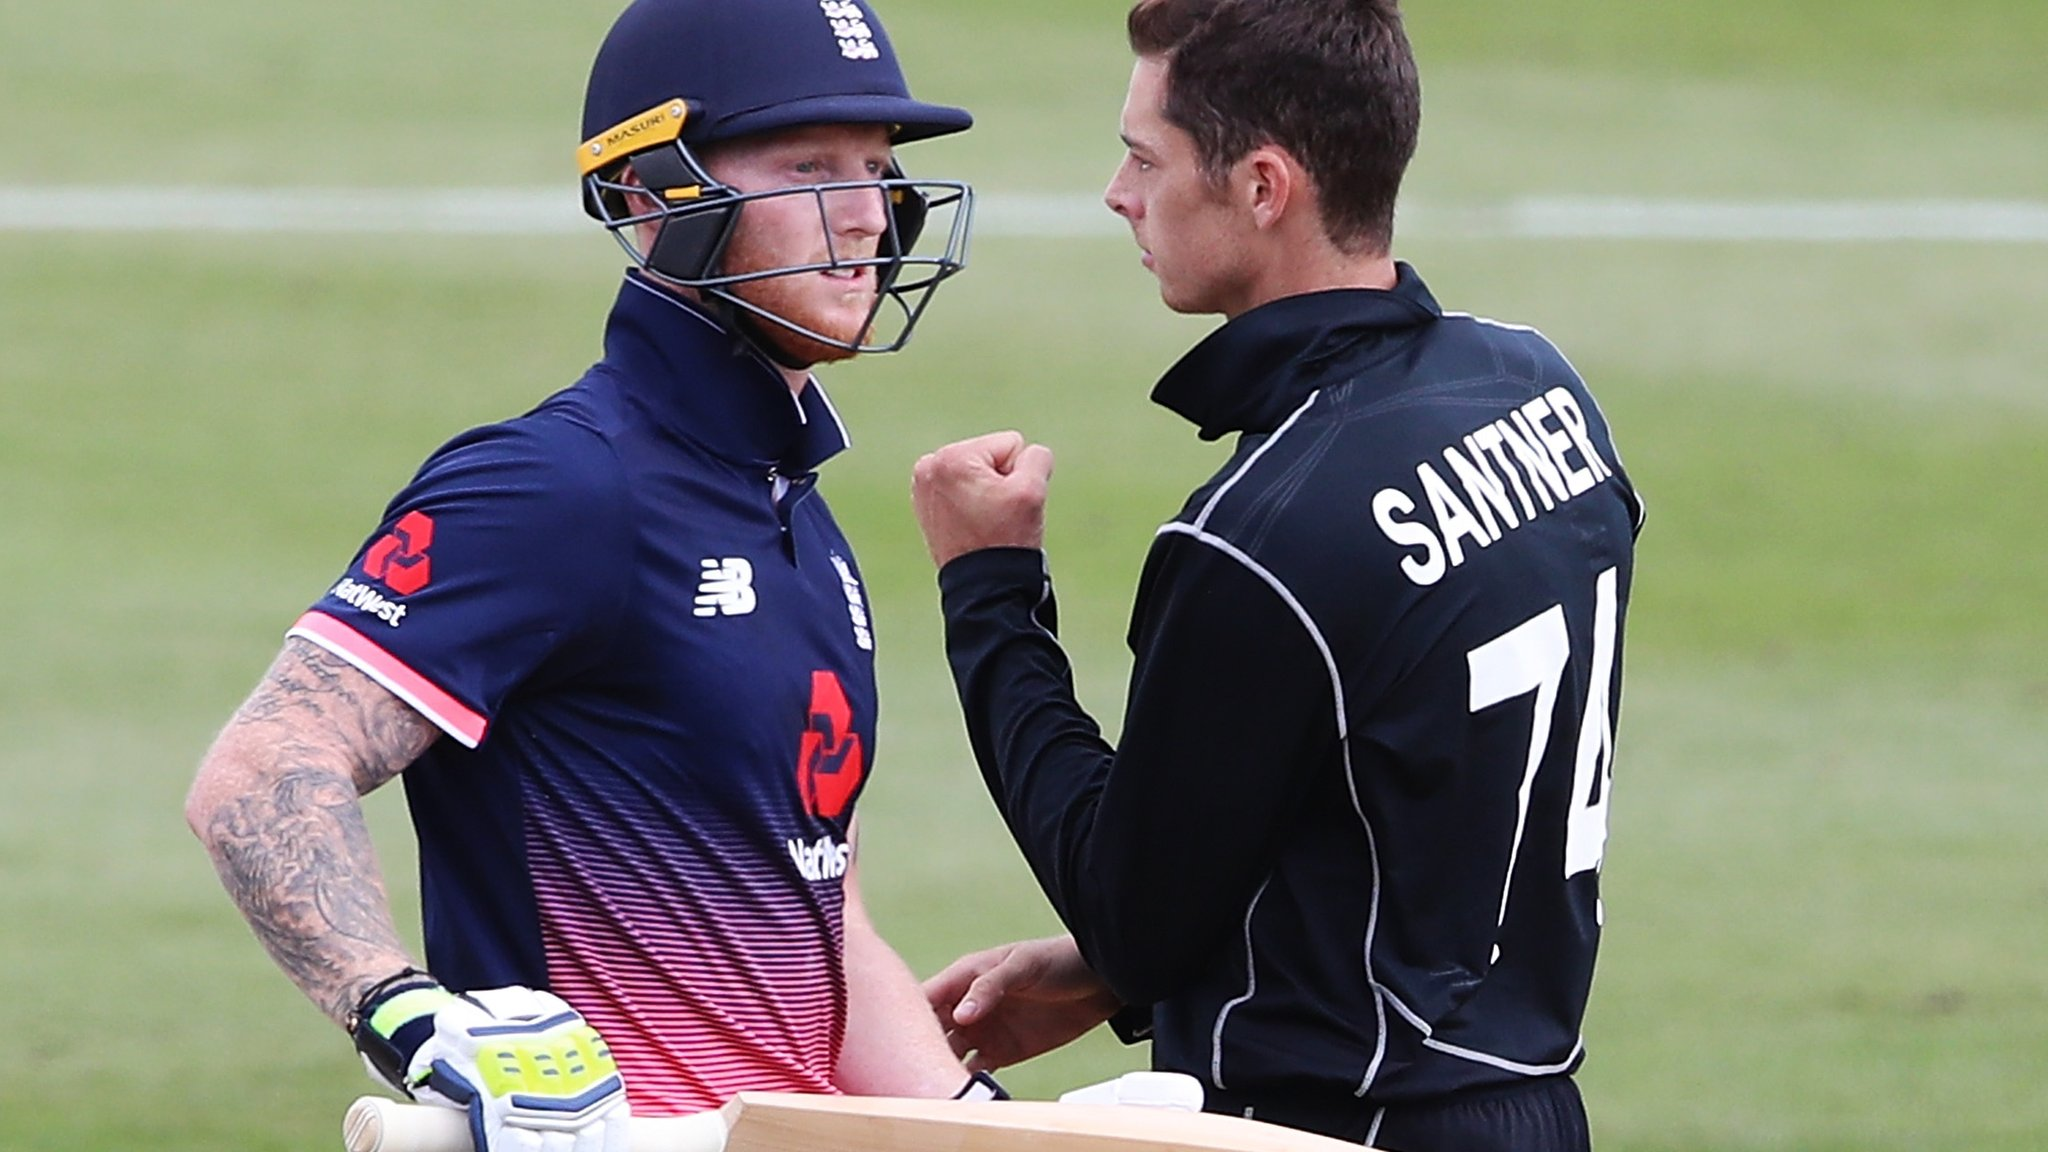 New Zealand v England: Ben Stokes return ends in thrilling defeat in first ODI